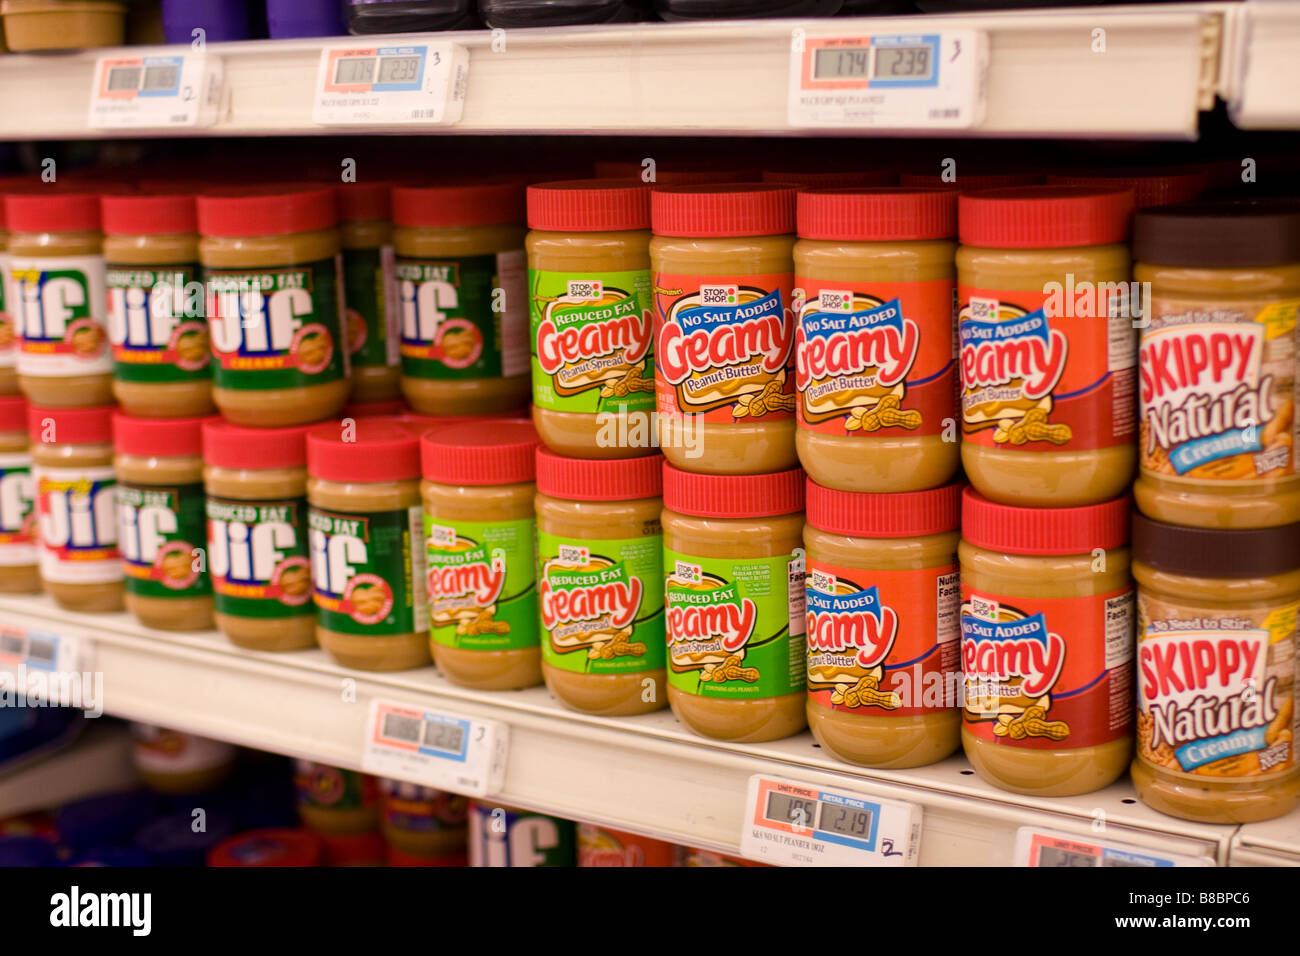 Peanut butter jars for sale on a supermarket shelve in the USA. Peanut butter sales have dropped after a salmonella - Stock Image